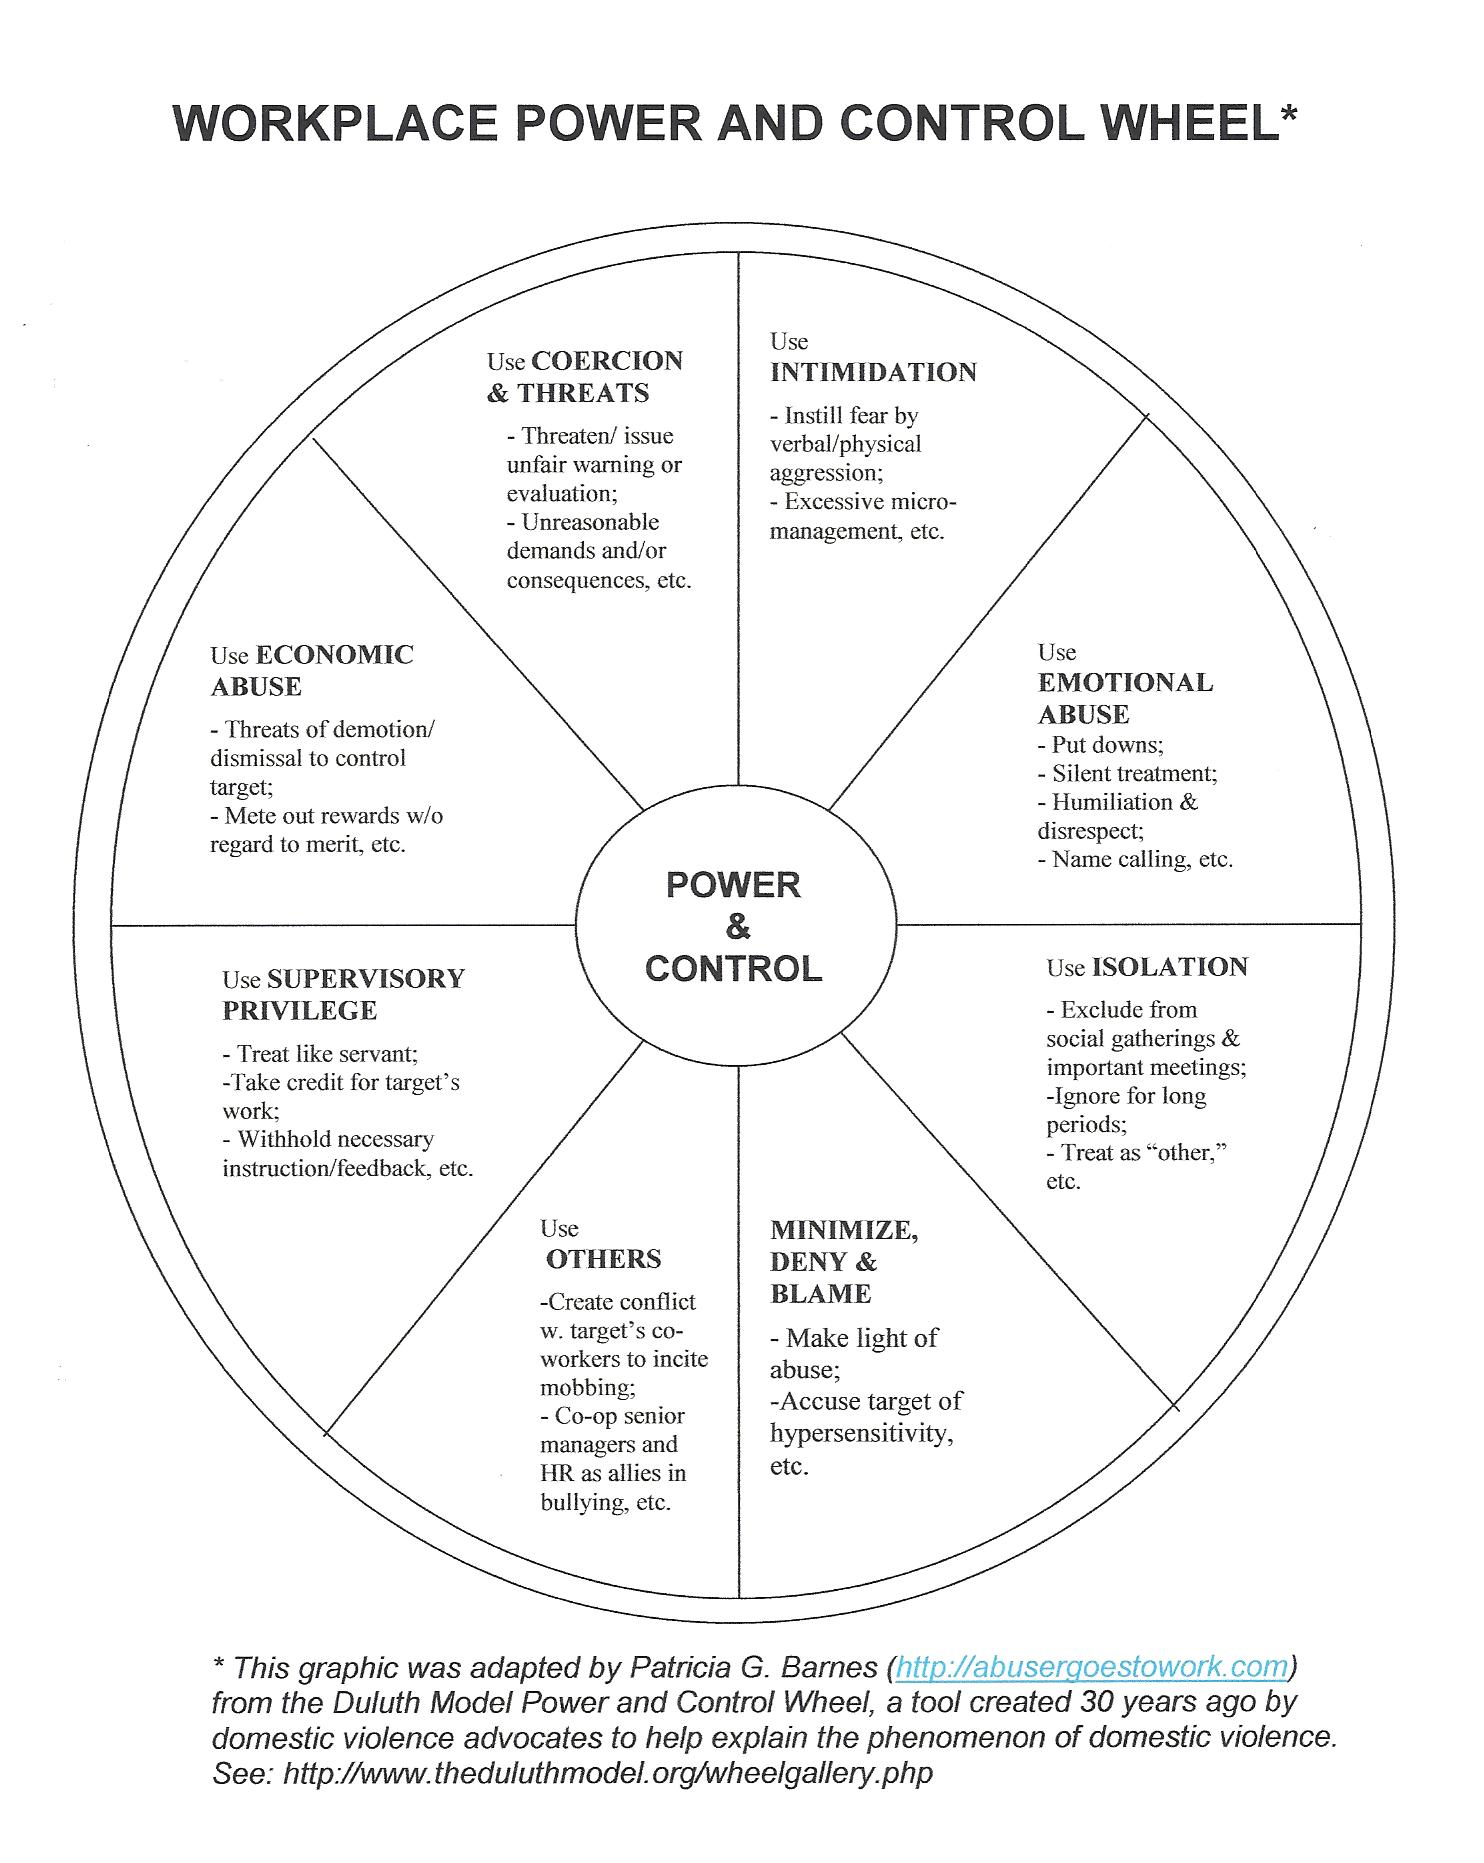 7 Types of Power in the Workplace